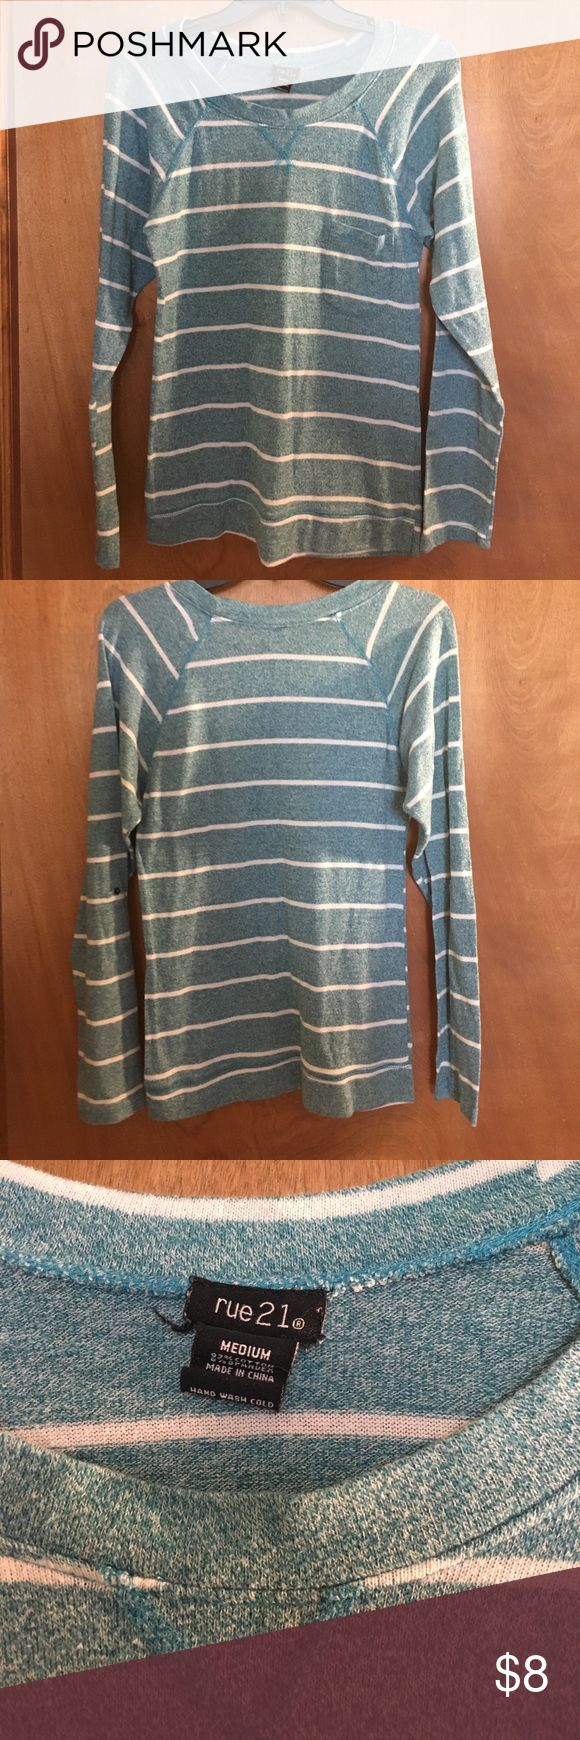 Rue 21 top Blue and white stripped light sweater. Rue21 Sweaters Crew & Scoop Necks